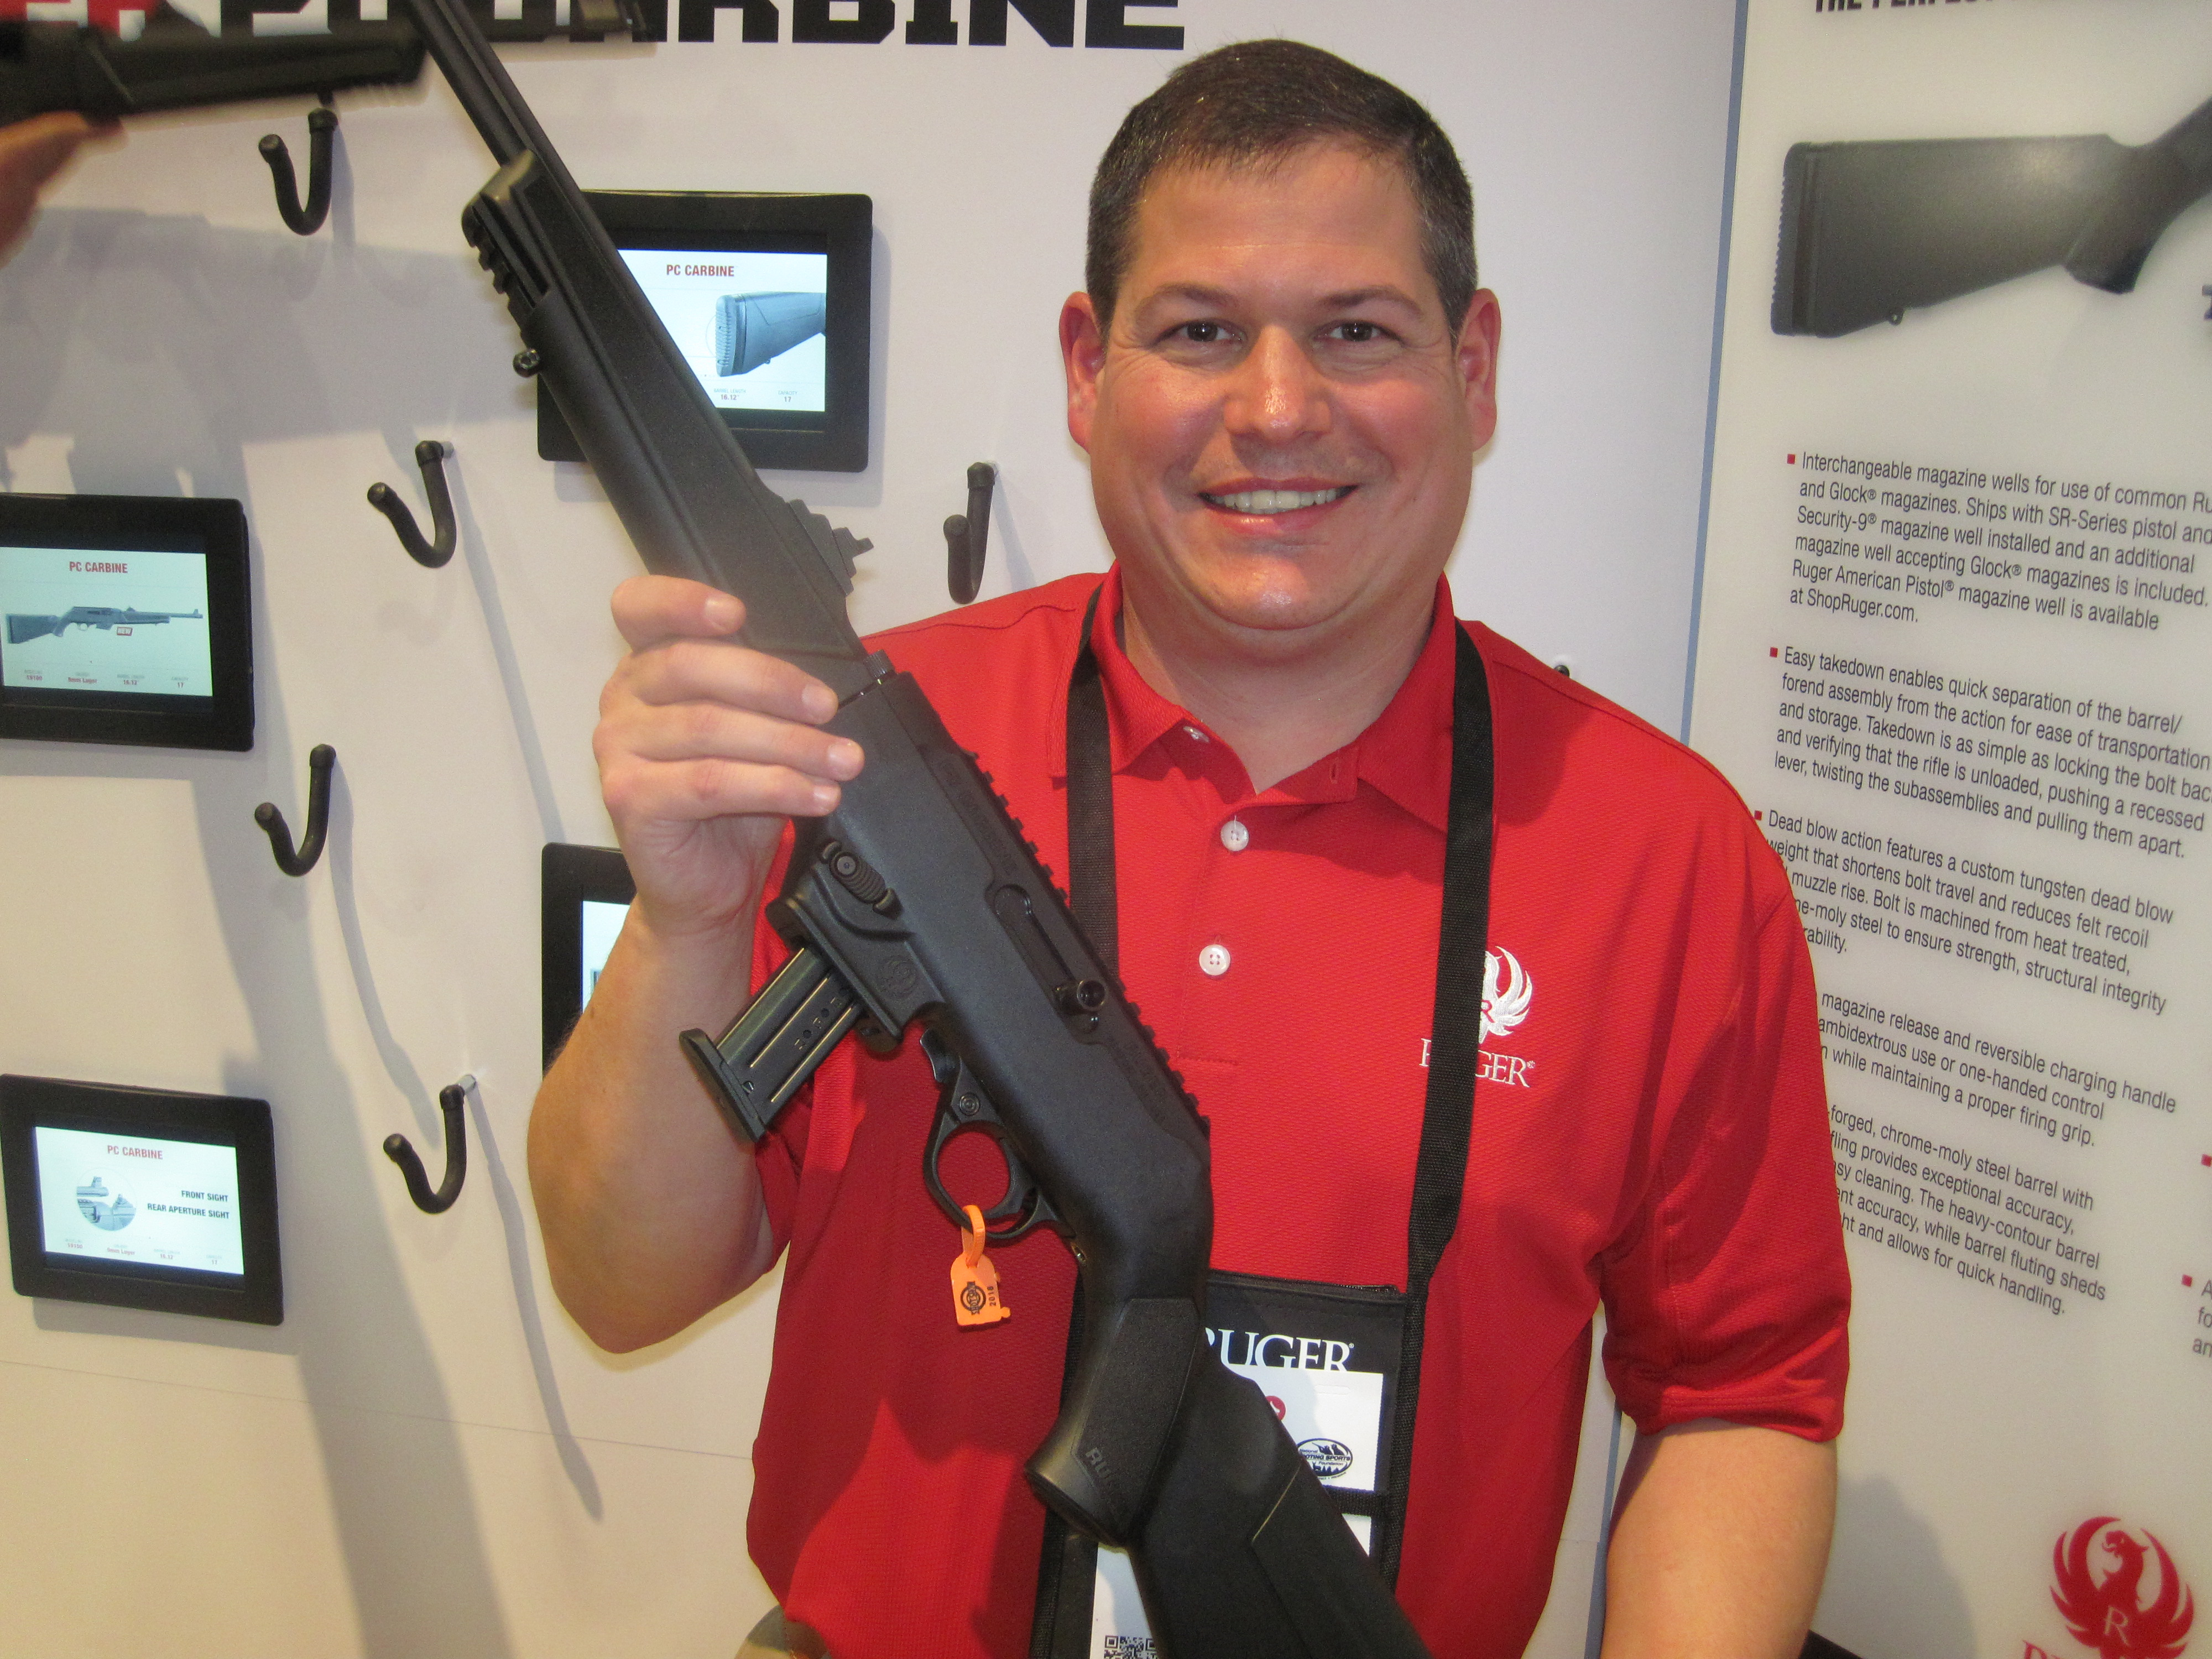 The Ruger PC Carbine at the 2018 SHOT Show - AllOutdoor com